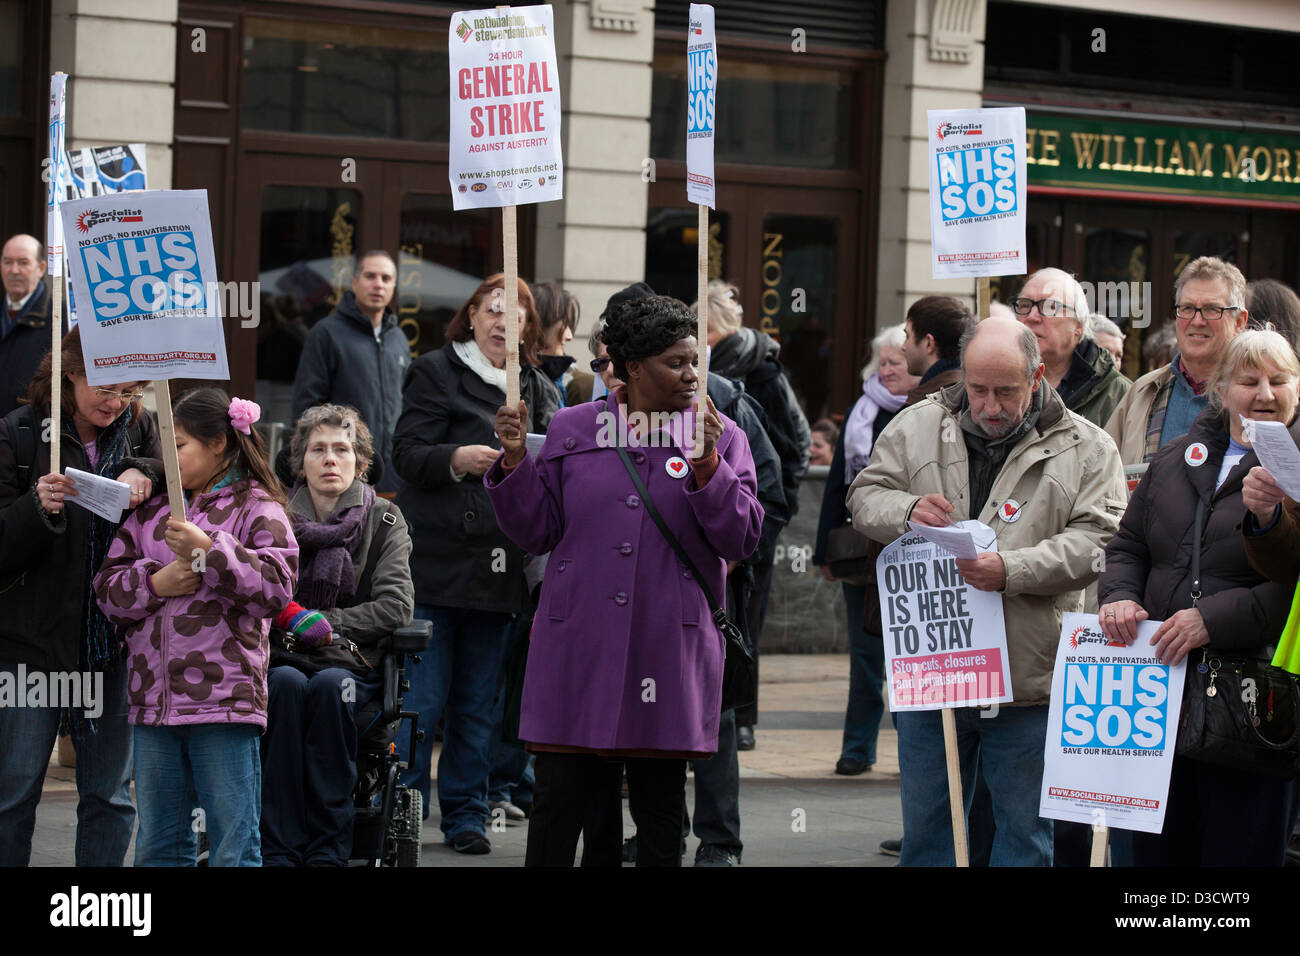 during the protest against cuts and hospital closures. London 16/02/12 Hammersmith - Stock Image